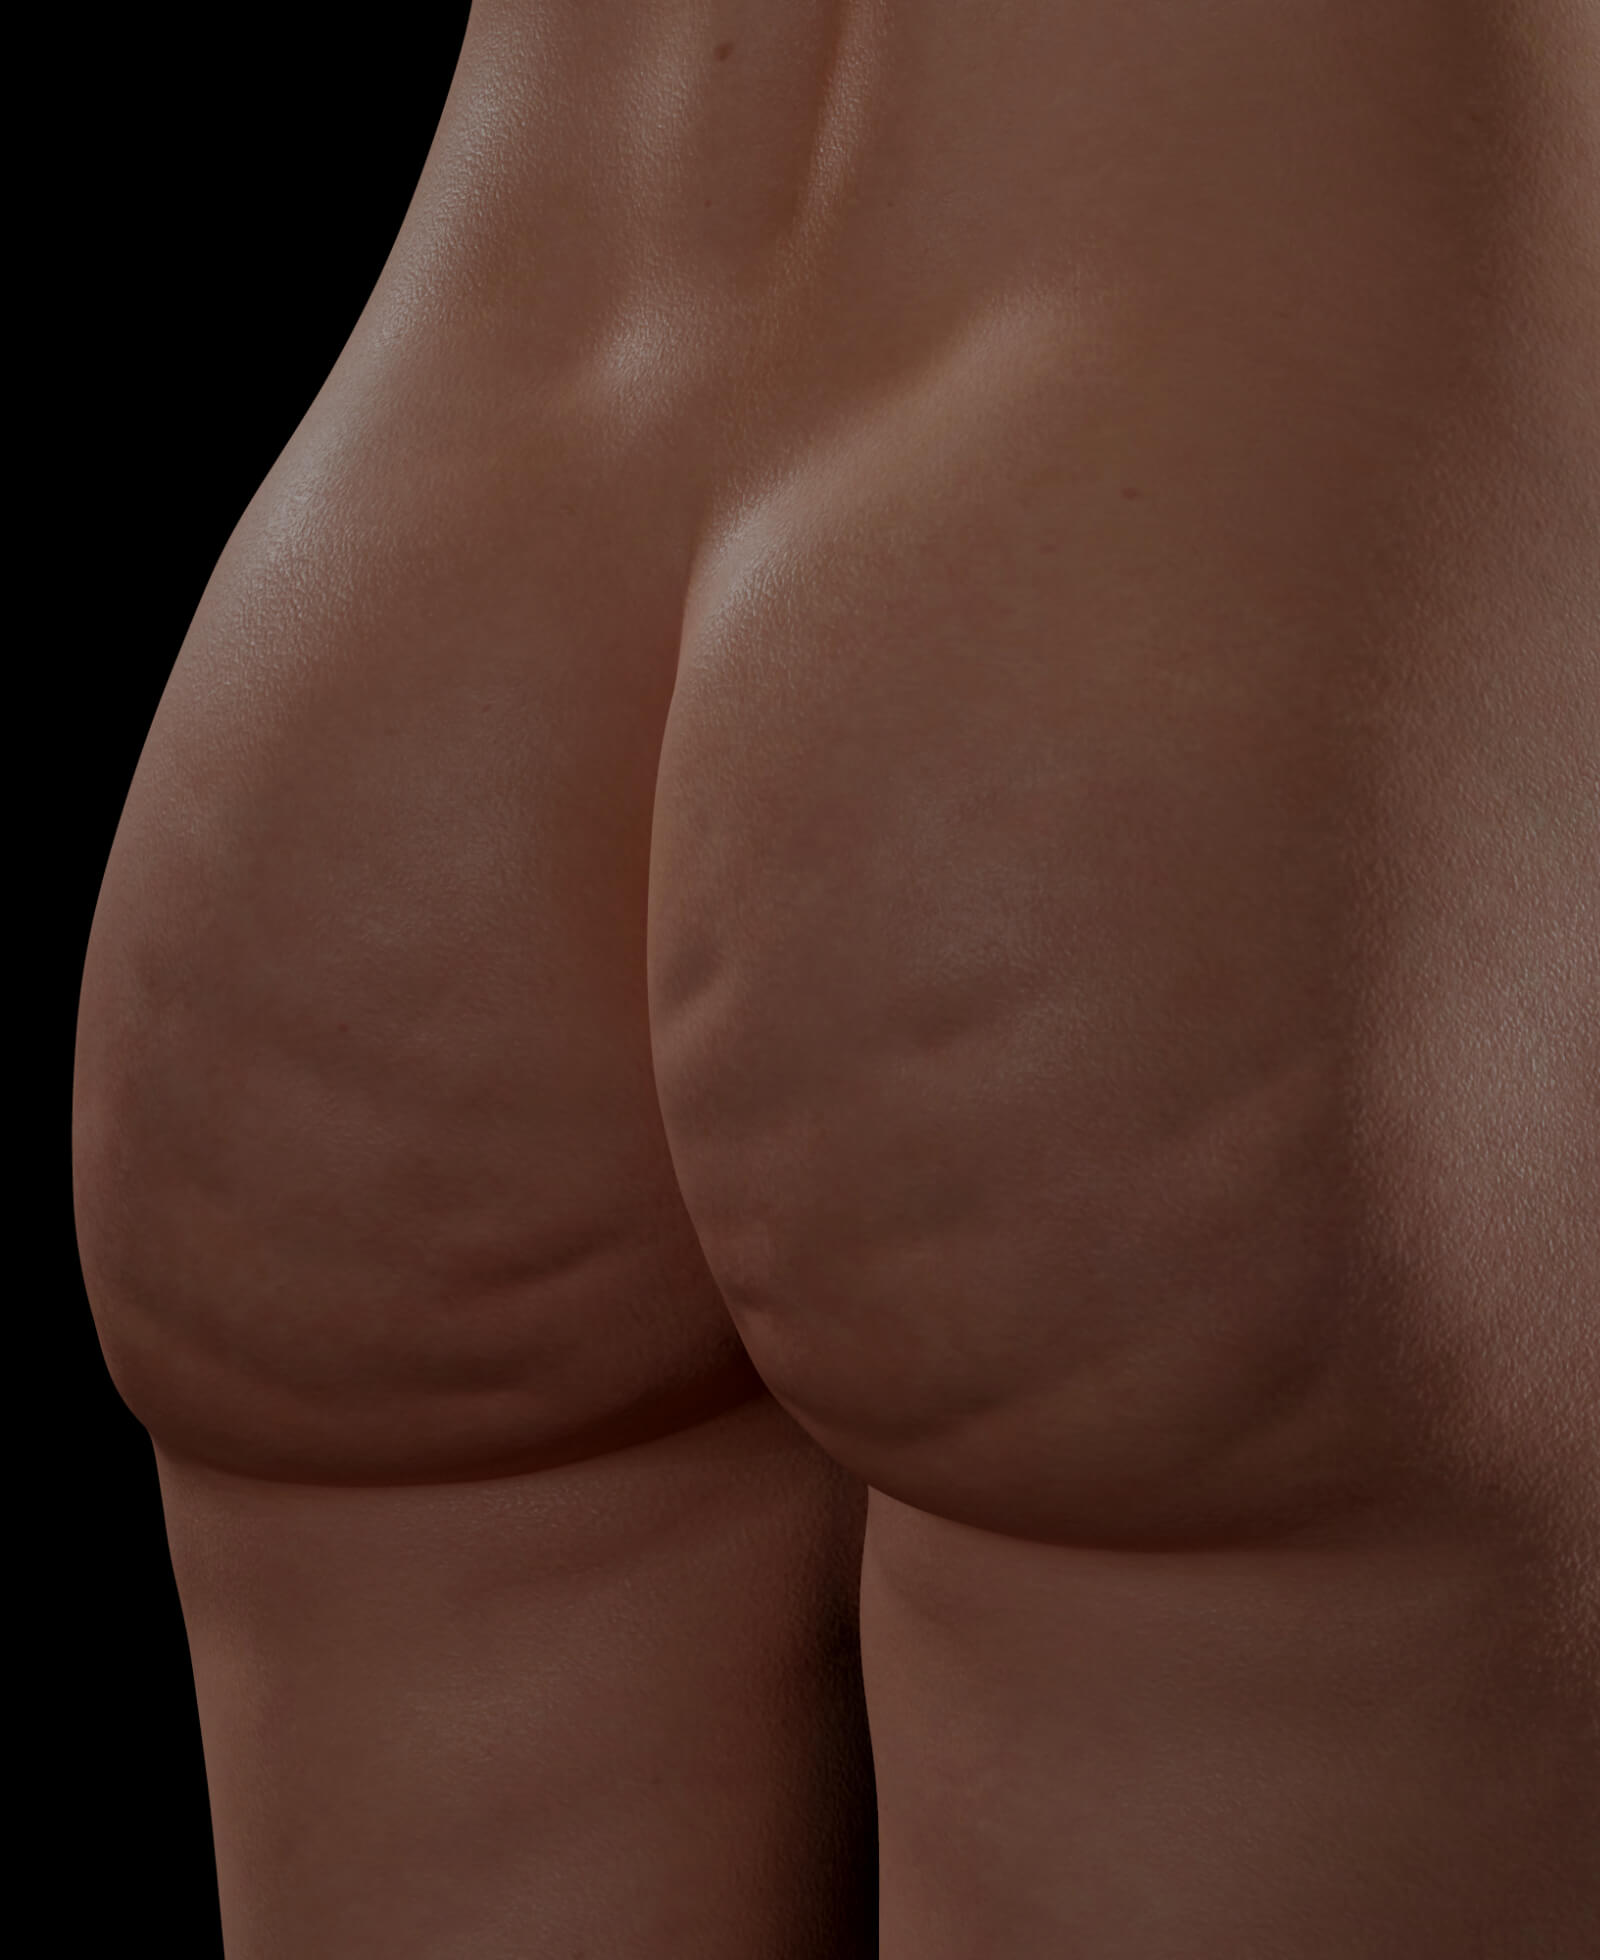 Female patient from Clinique Chloé with cellulite